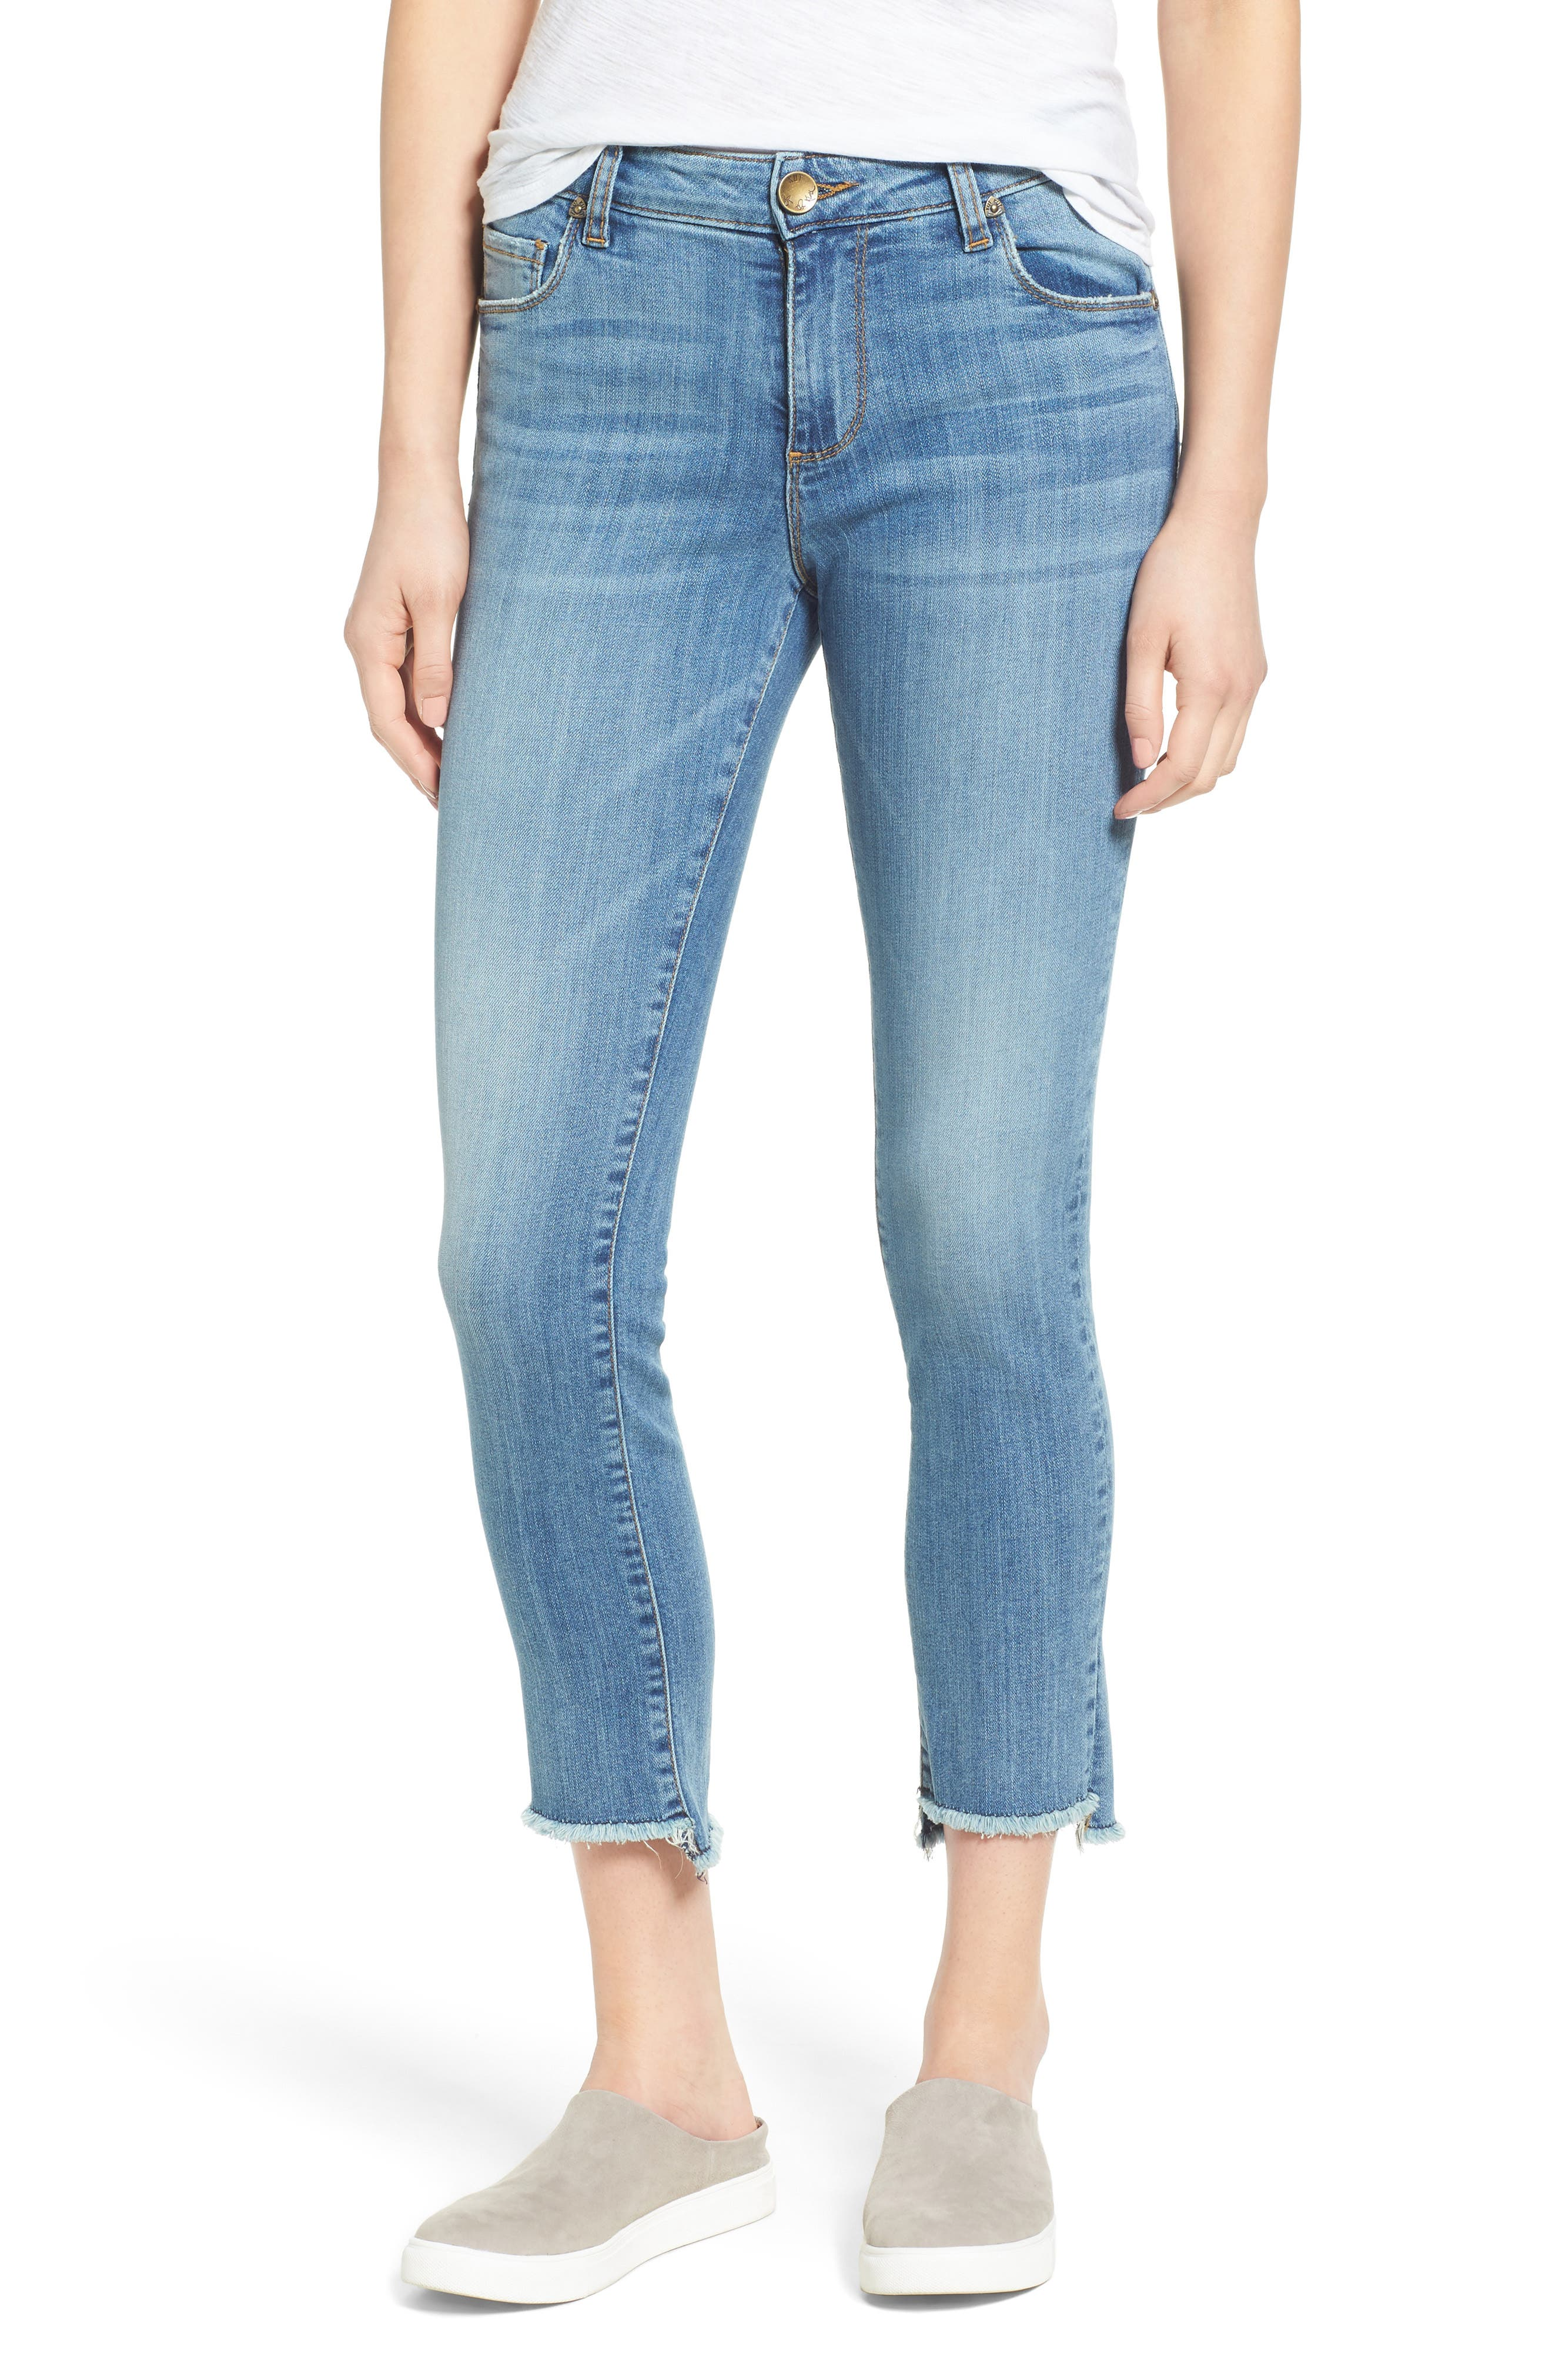 Alternate Image 1 Selected - KUT from the Kloth Reese Frayed Straight Leg Ankle Jeans (Participation)